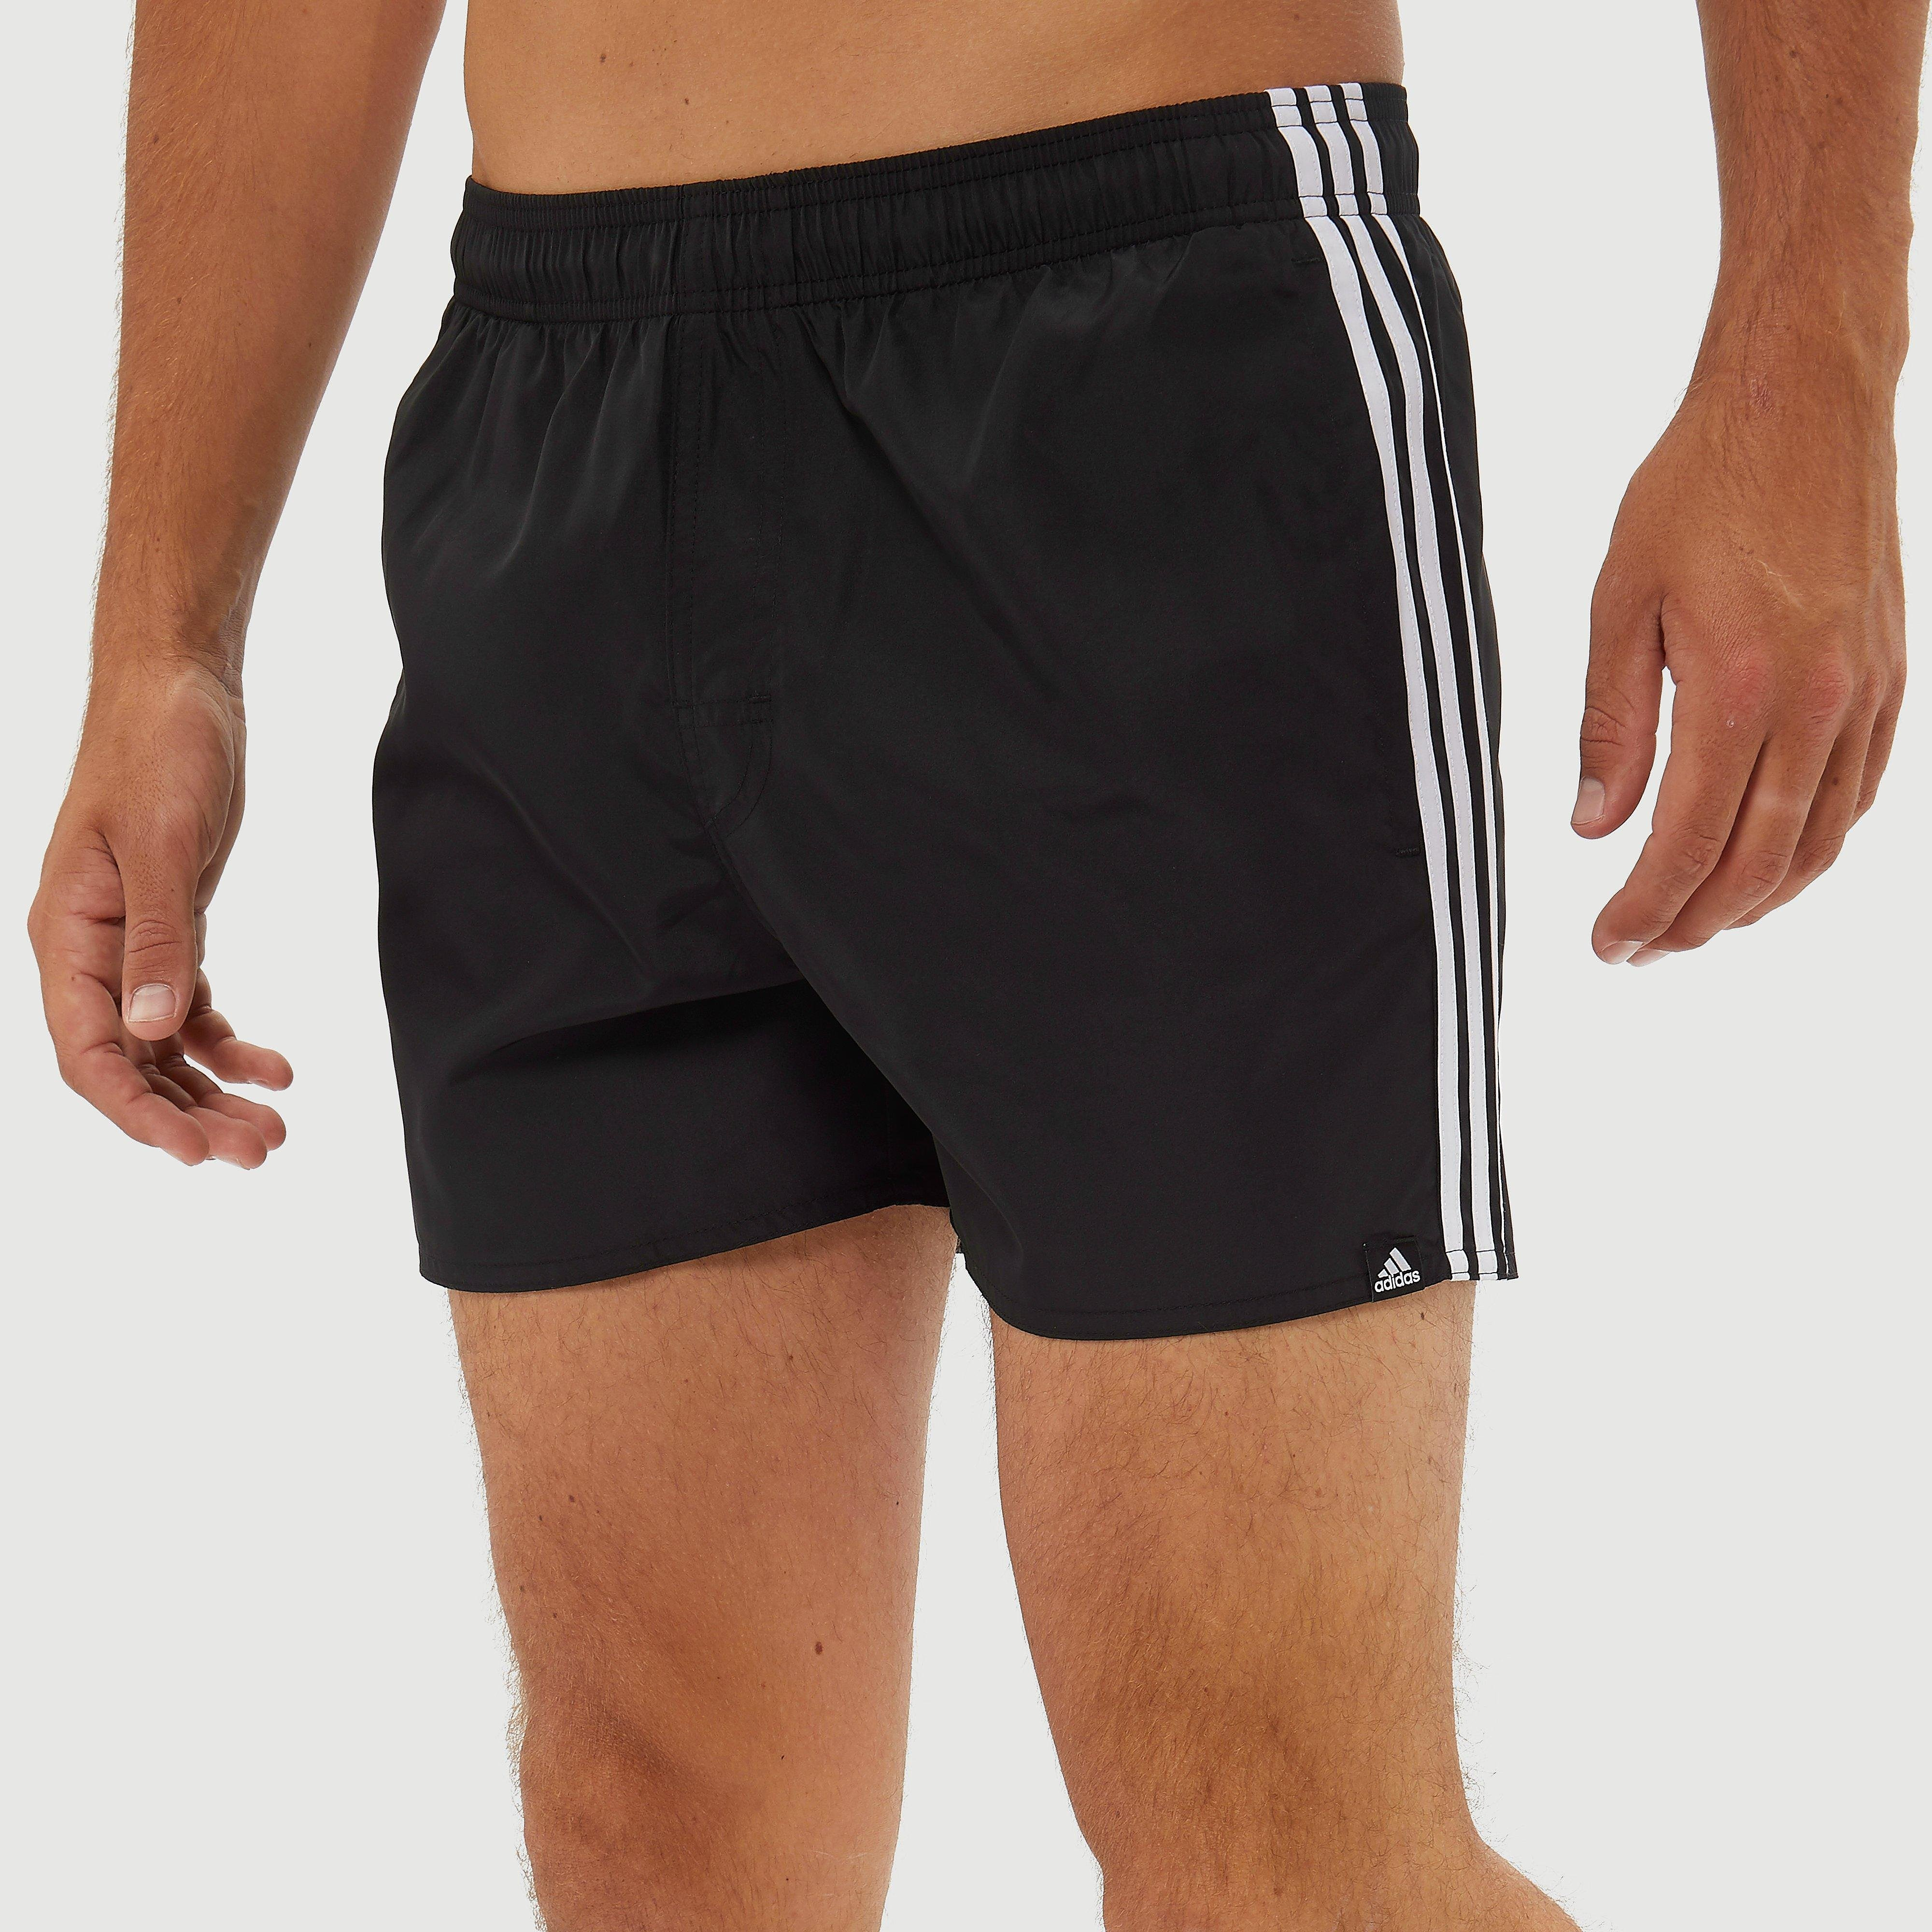 3-stripes boardshort zwart heren